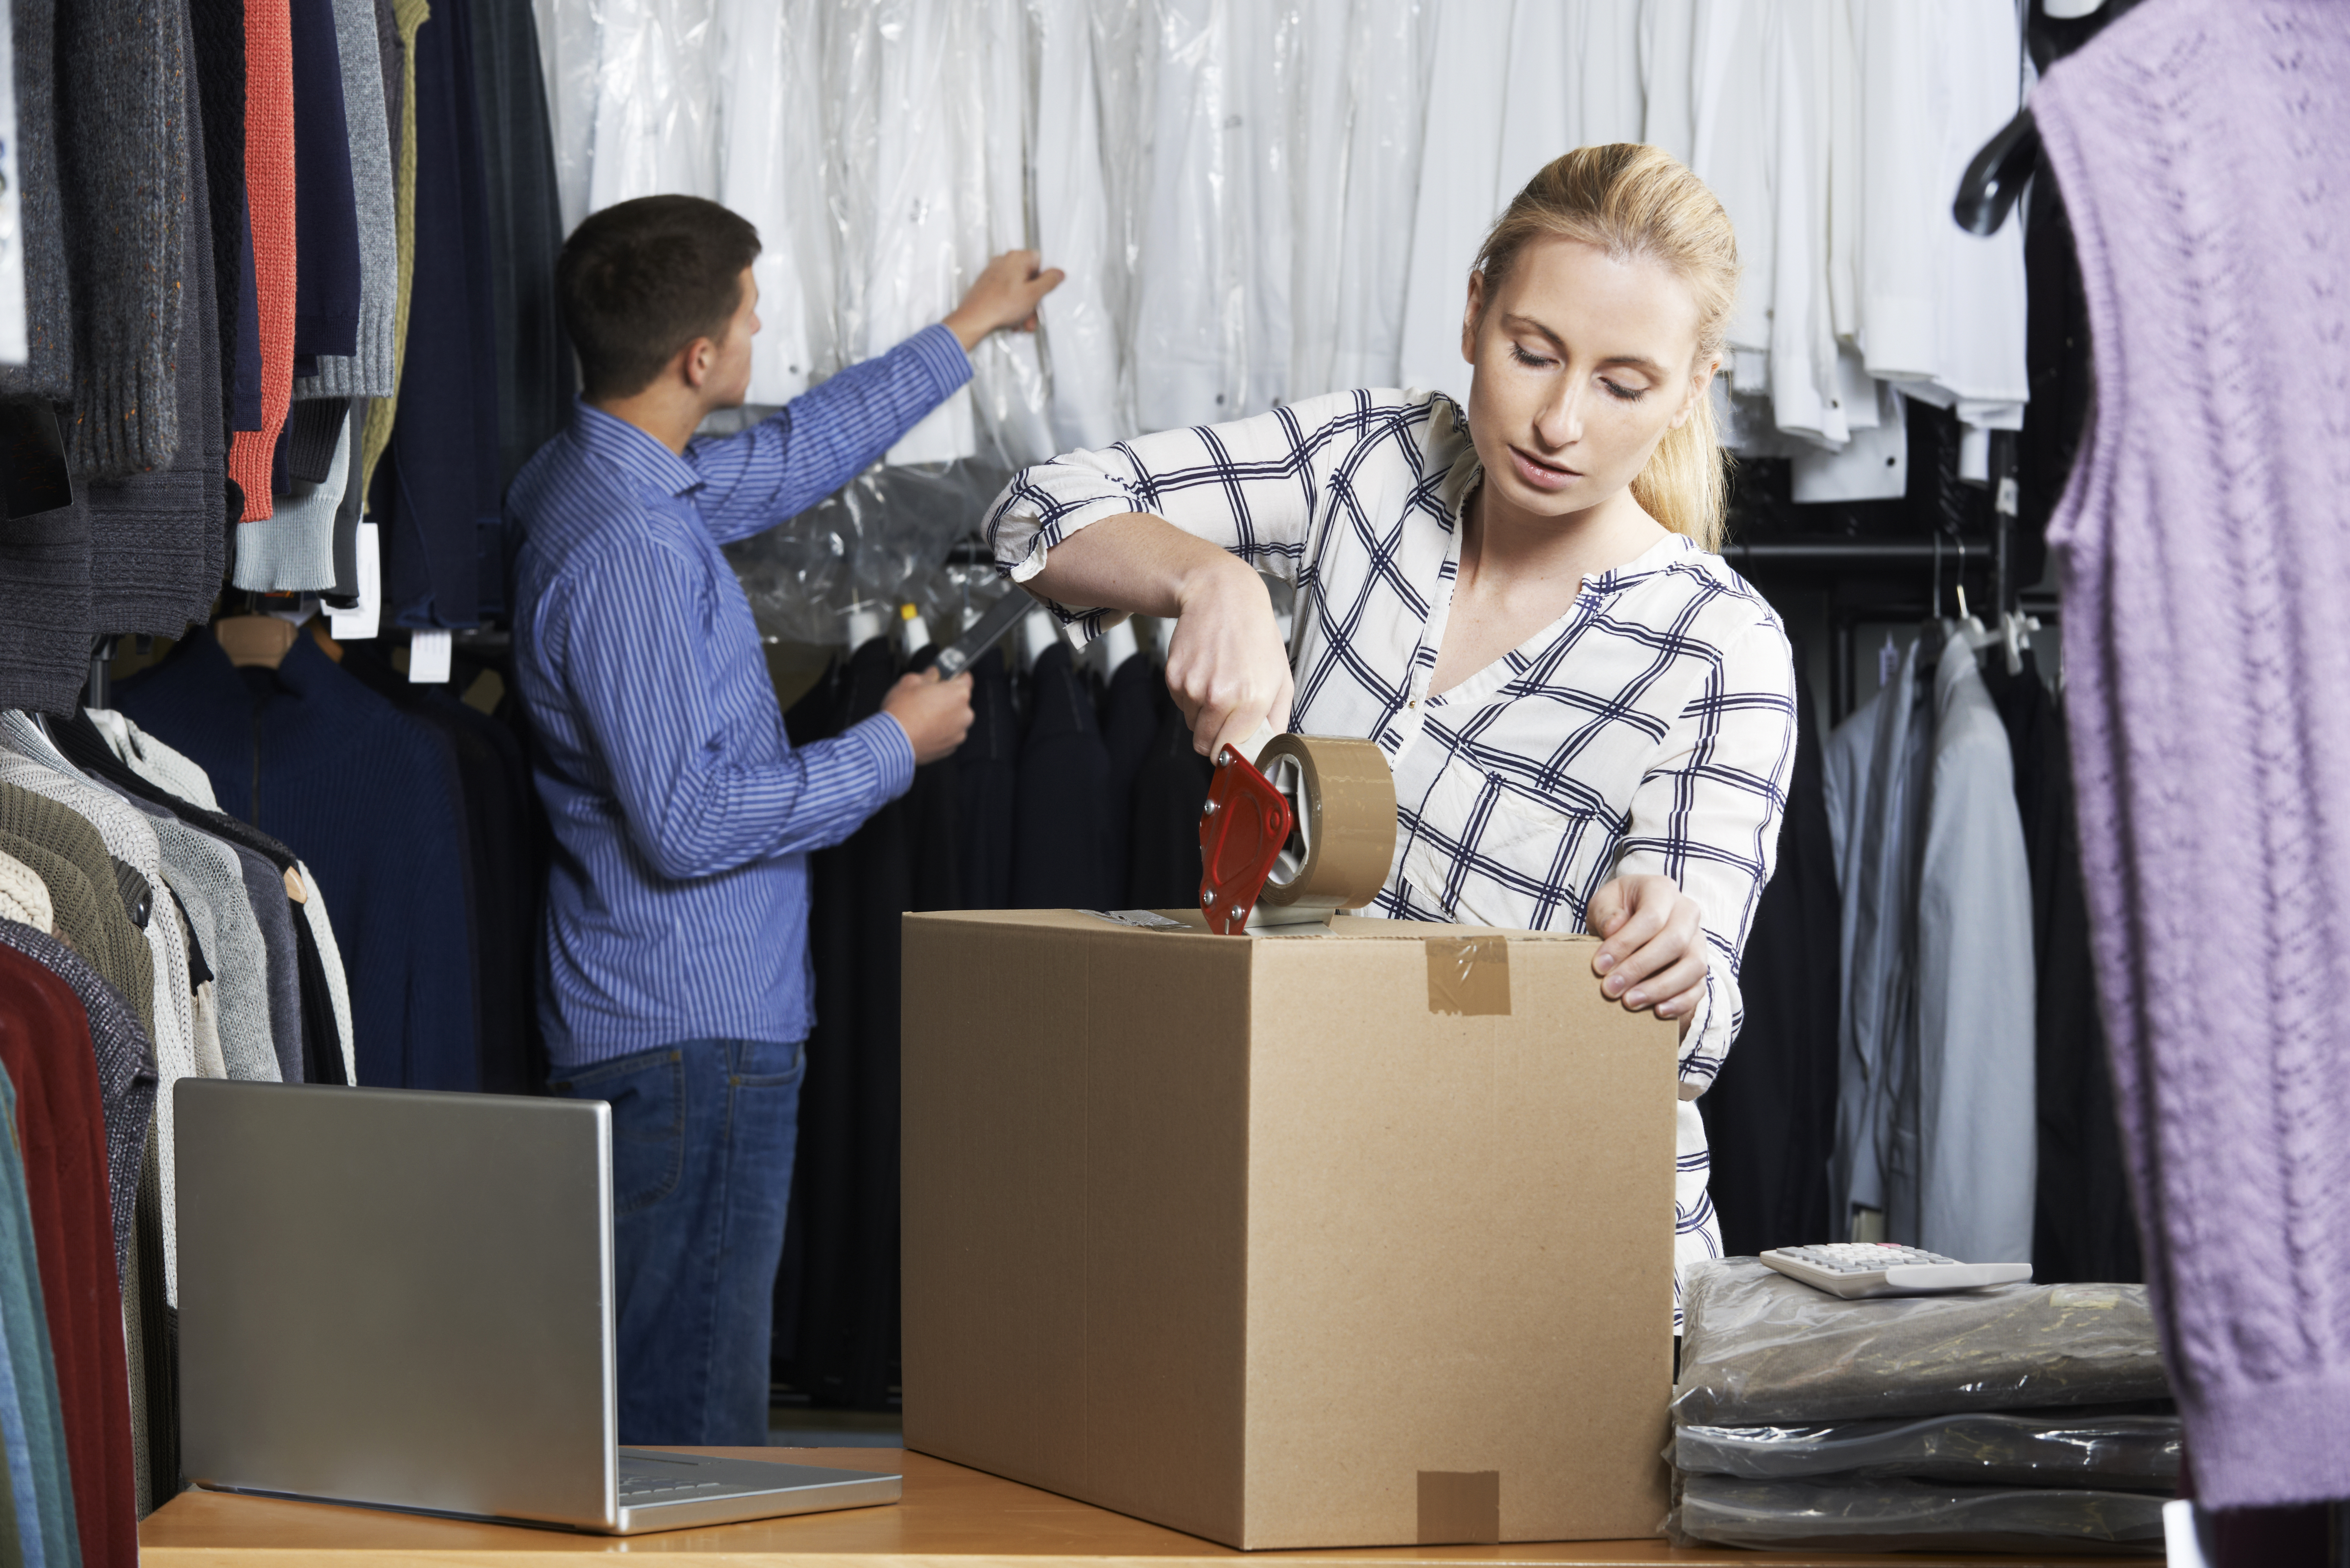 Warehouse worker (clothes) in NL